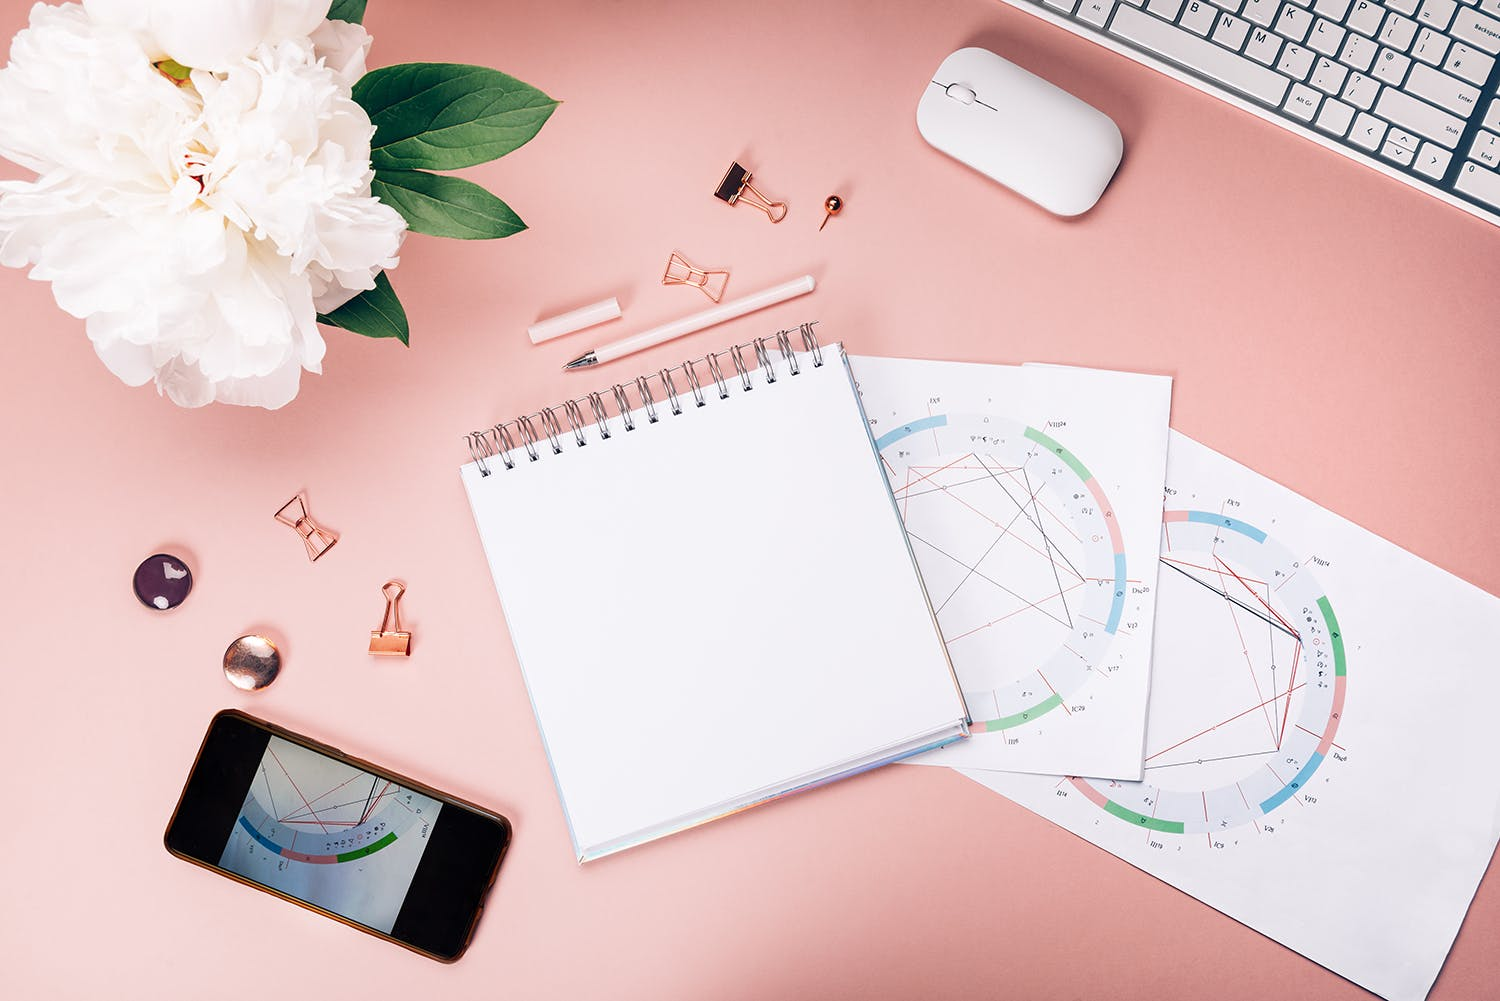 Photo of a cellphone, notebook, hand drawn birth charts, and a computer with a bouquet of flowers next to it on a pink background.